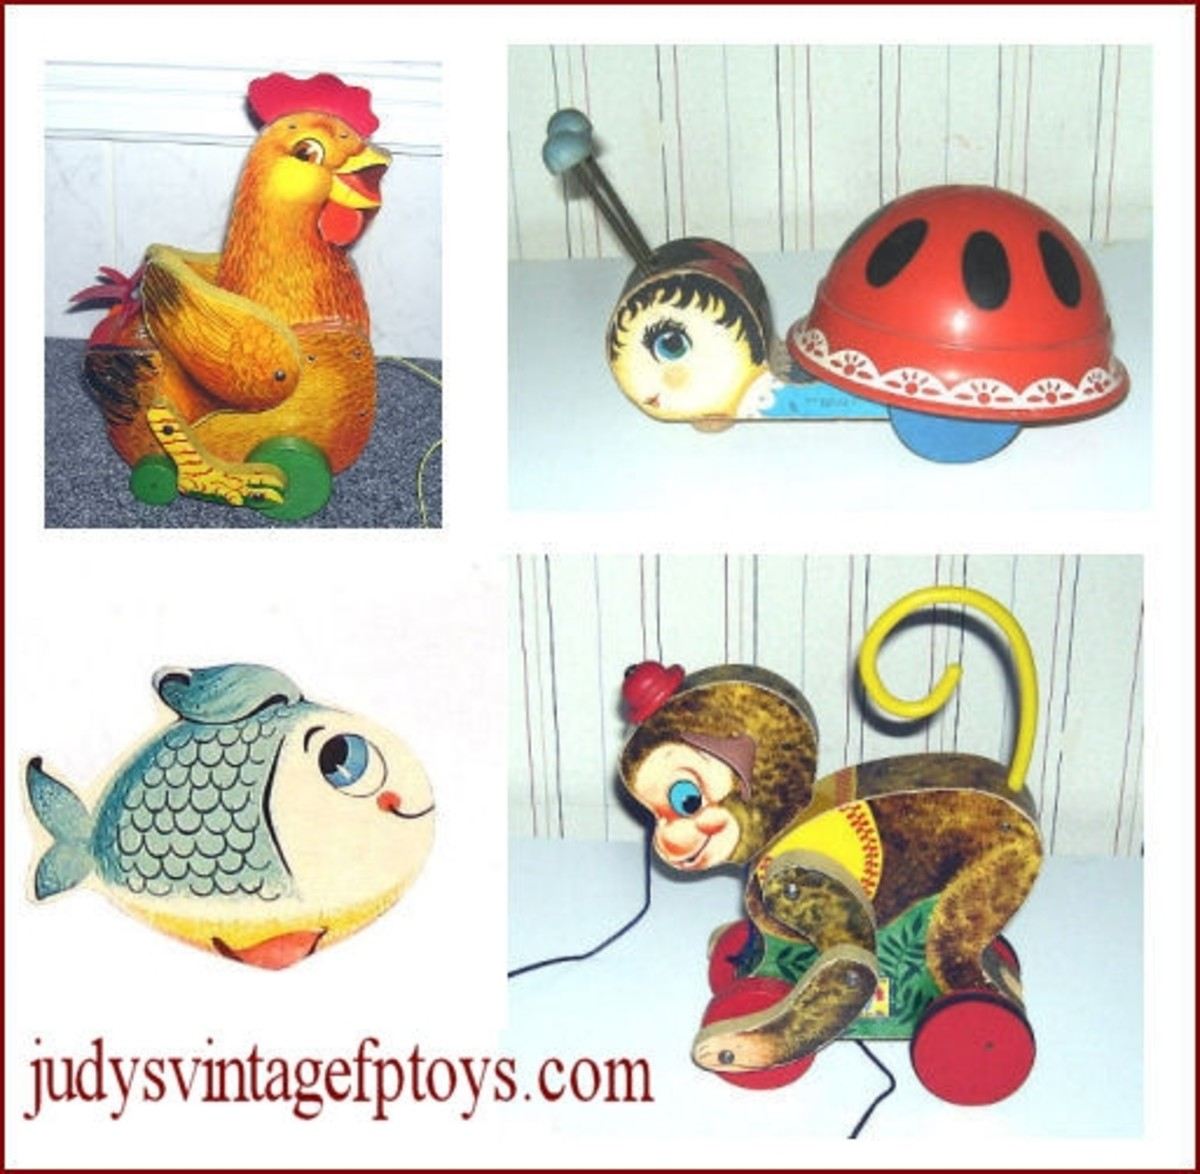 Judy's Vintage Fisher Price Toys